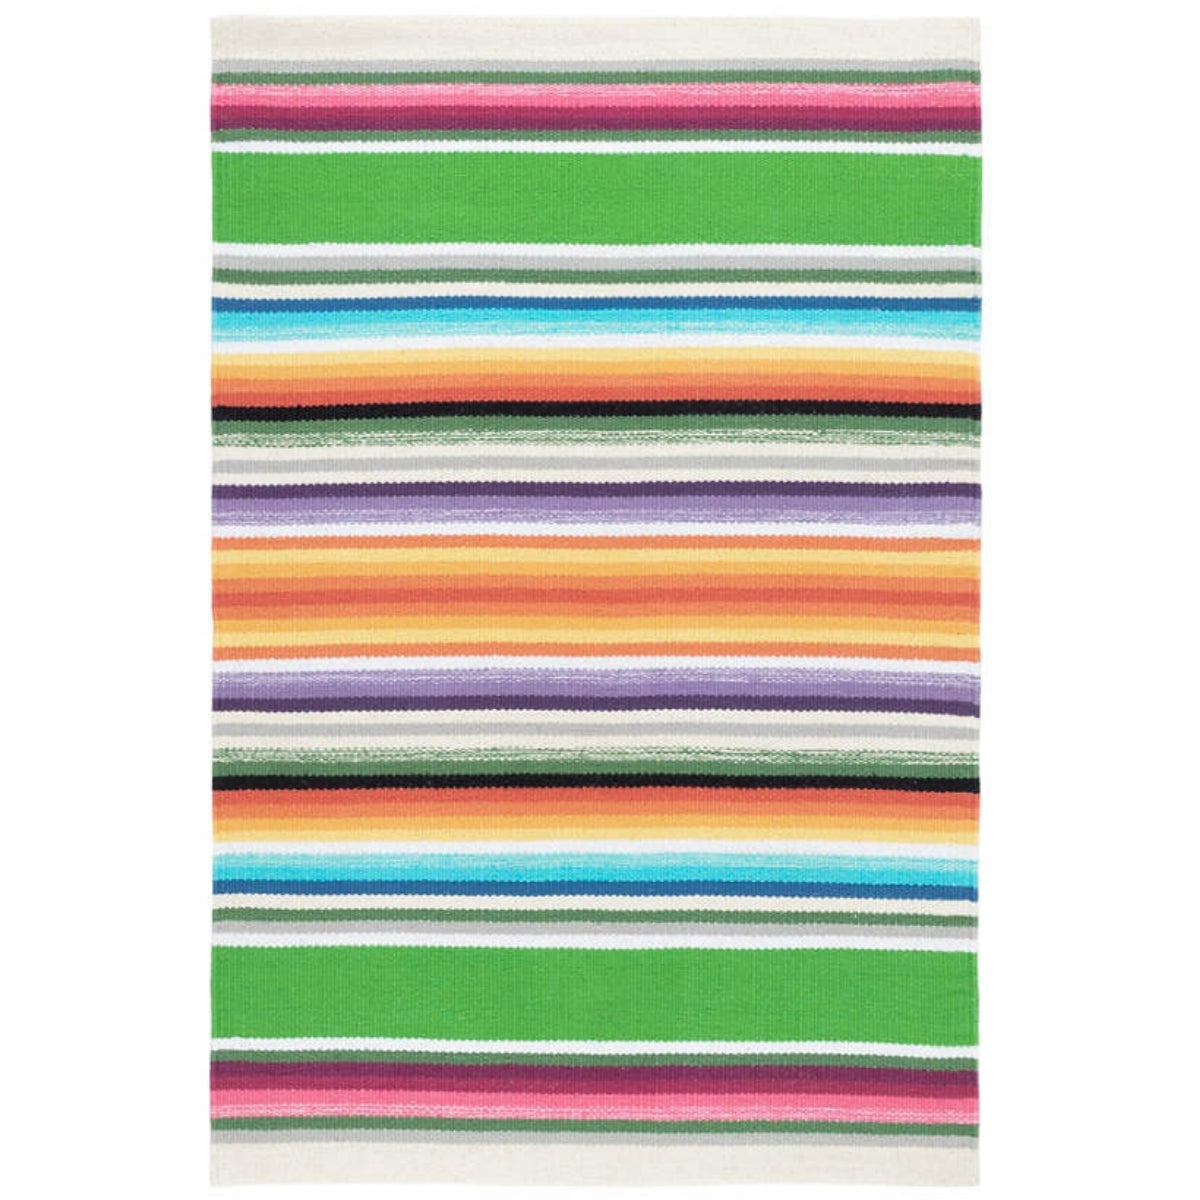 Furbish - Serape Multicolored Stripes Woven Cotton Rug